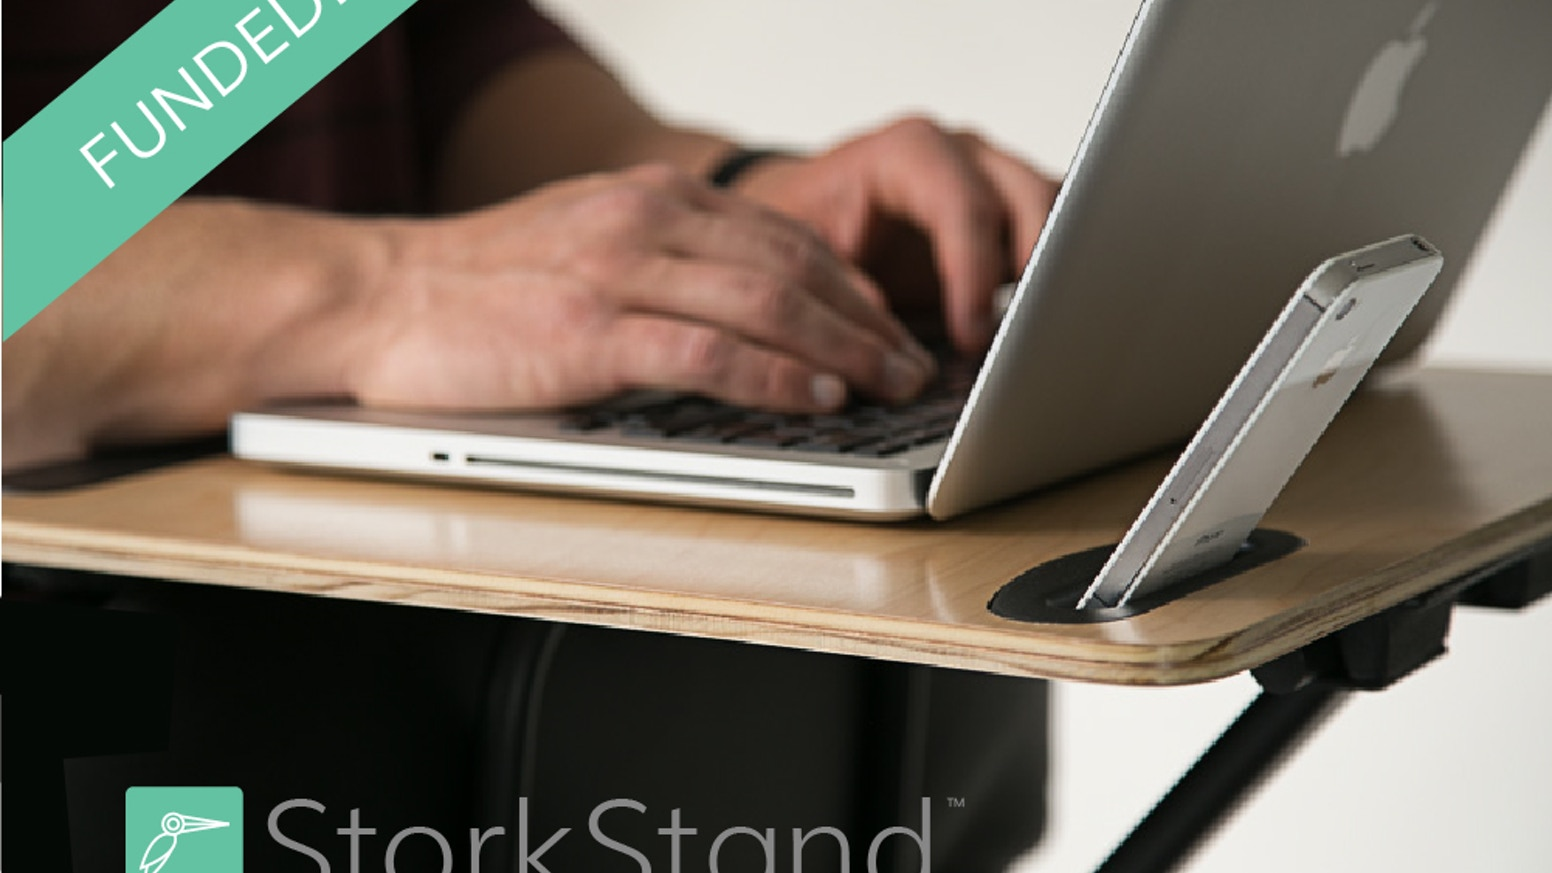 Transform your chair into a healthy standing desk in seconds.  StorkStand is the first portable and affordable standing desk for health-conscious professionals and startup teams.  www.StorkStand.com